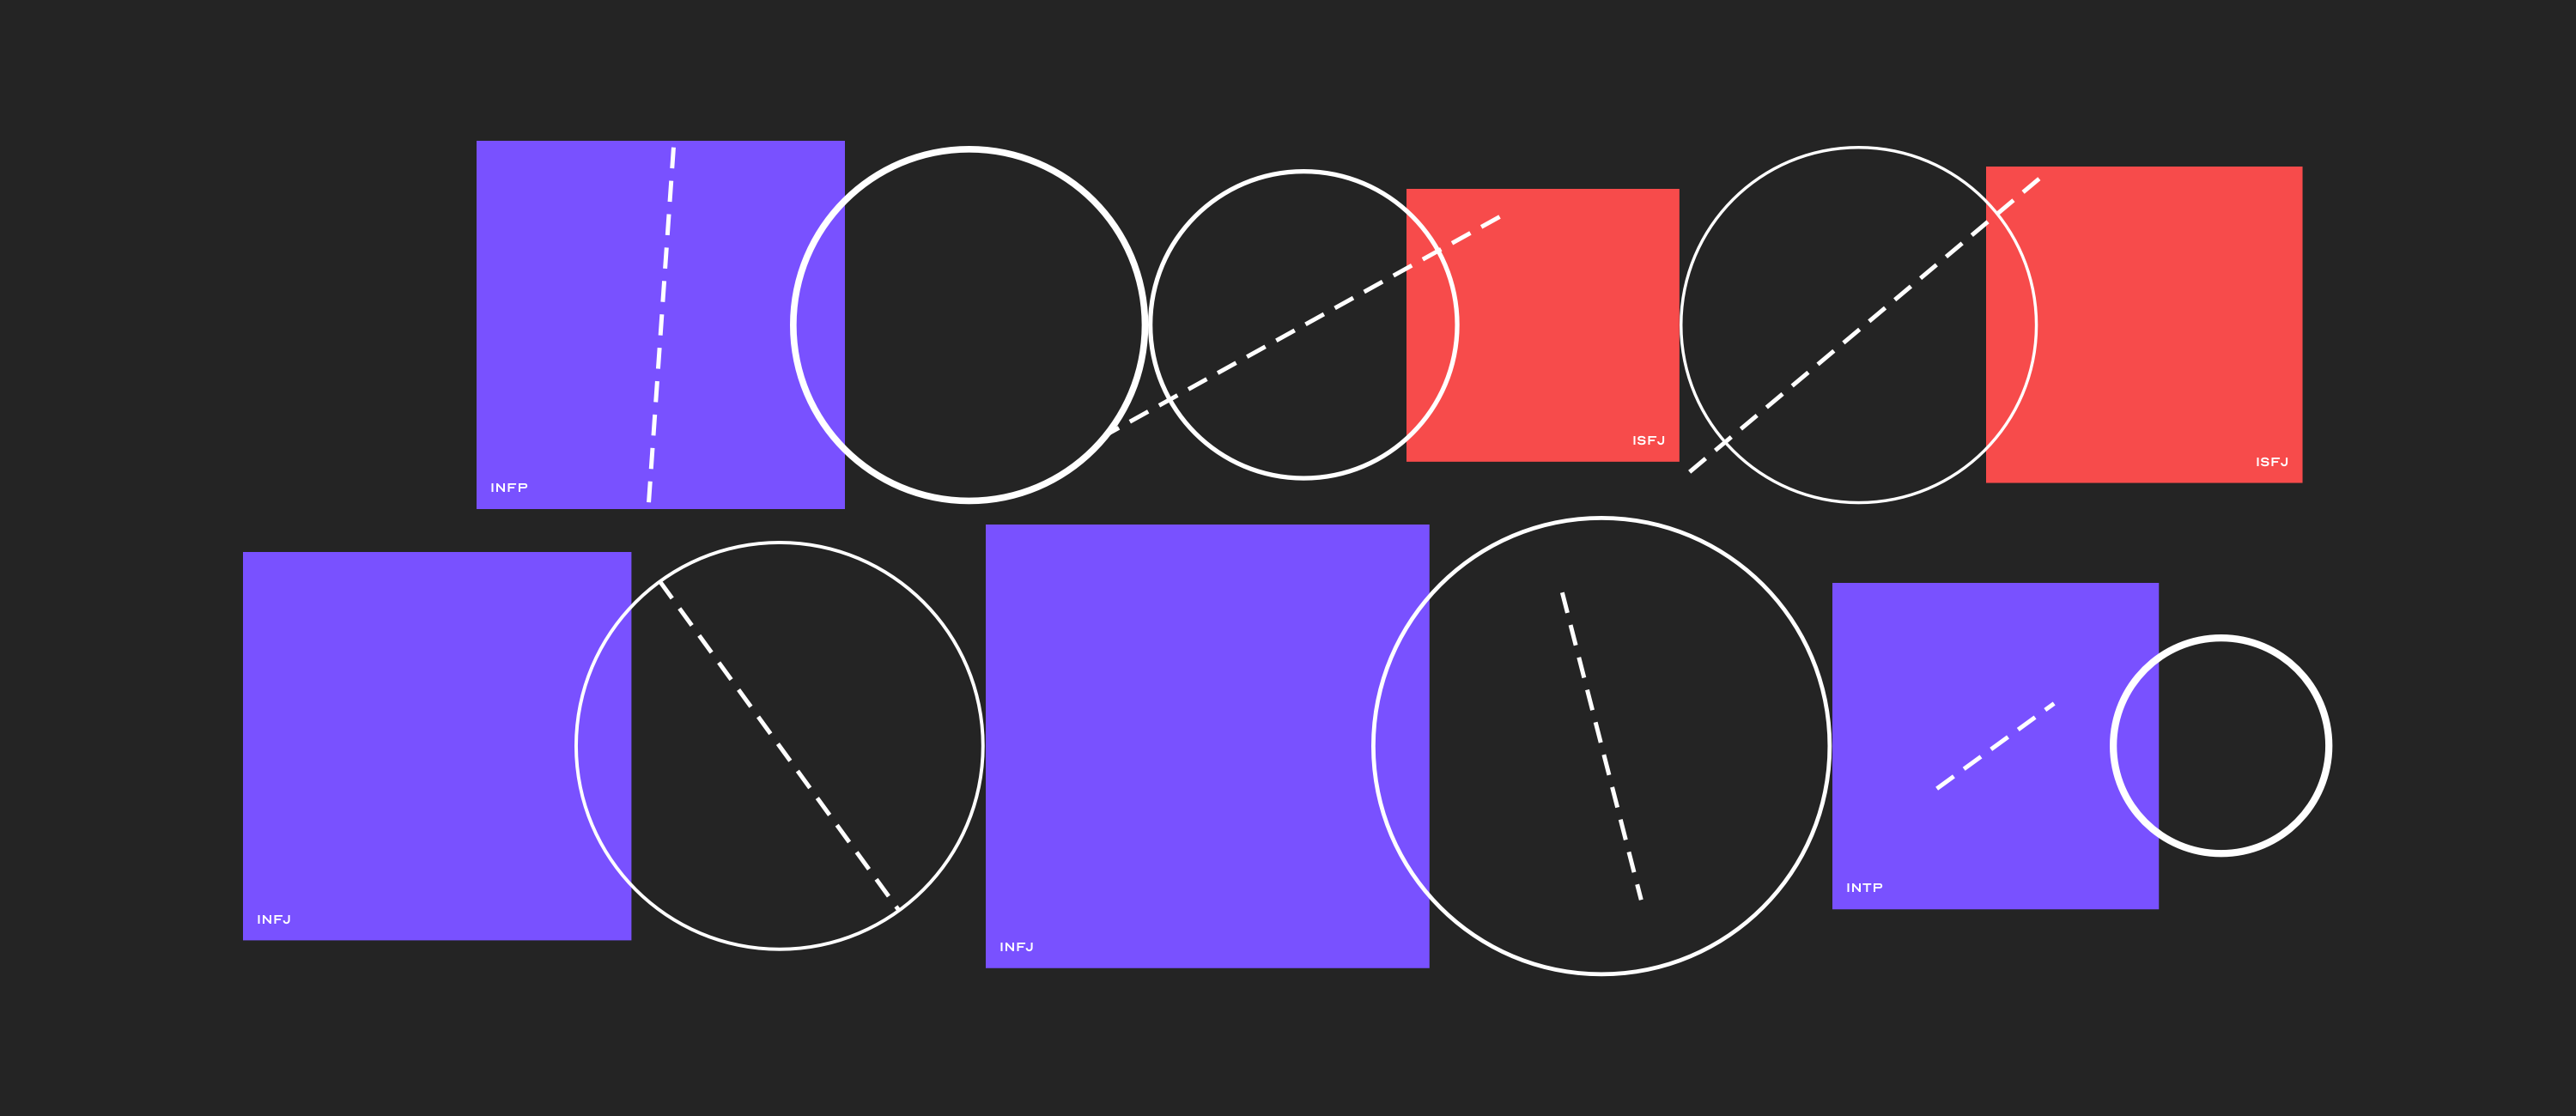 An abstract representation of our design team's results.